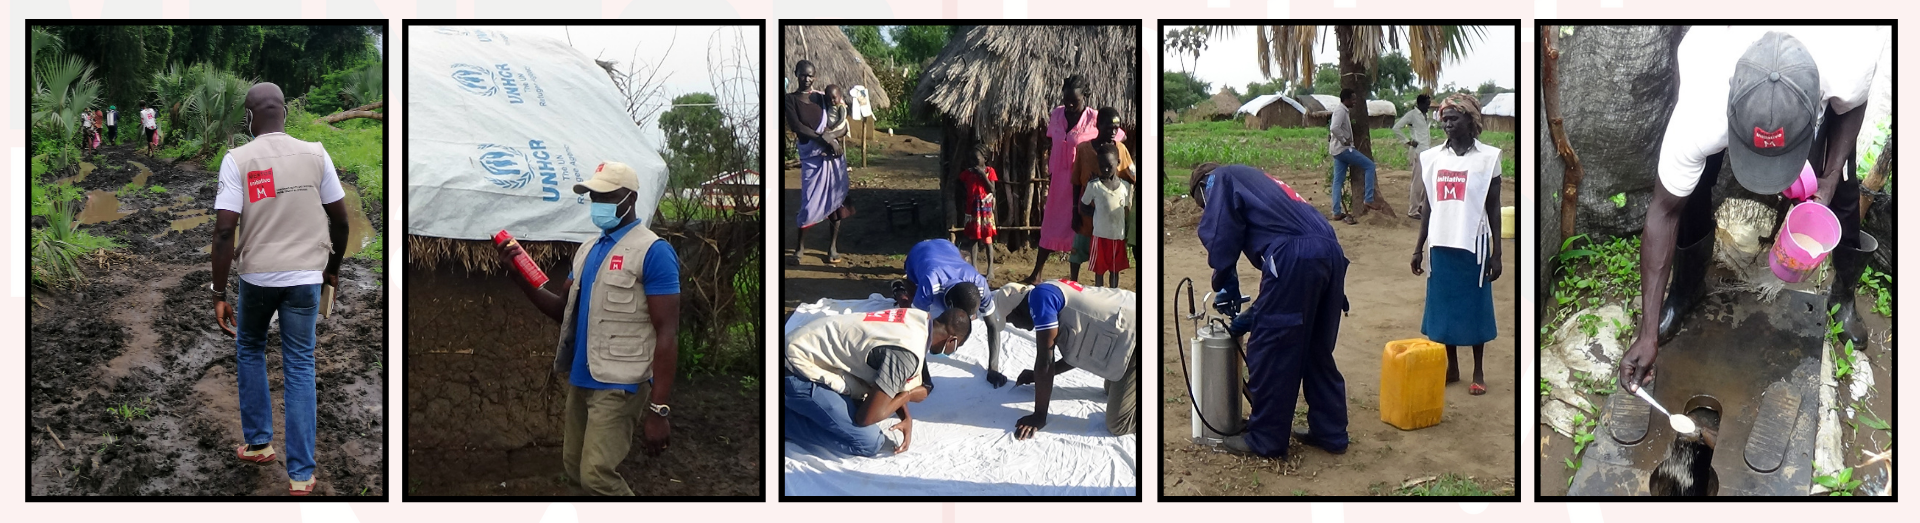 South Sudan Success Stories: Operation of Disease Control Programmes During the COVID-19 Pandemic